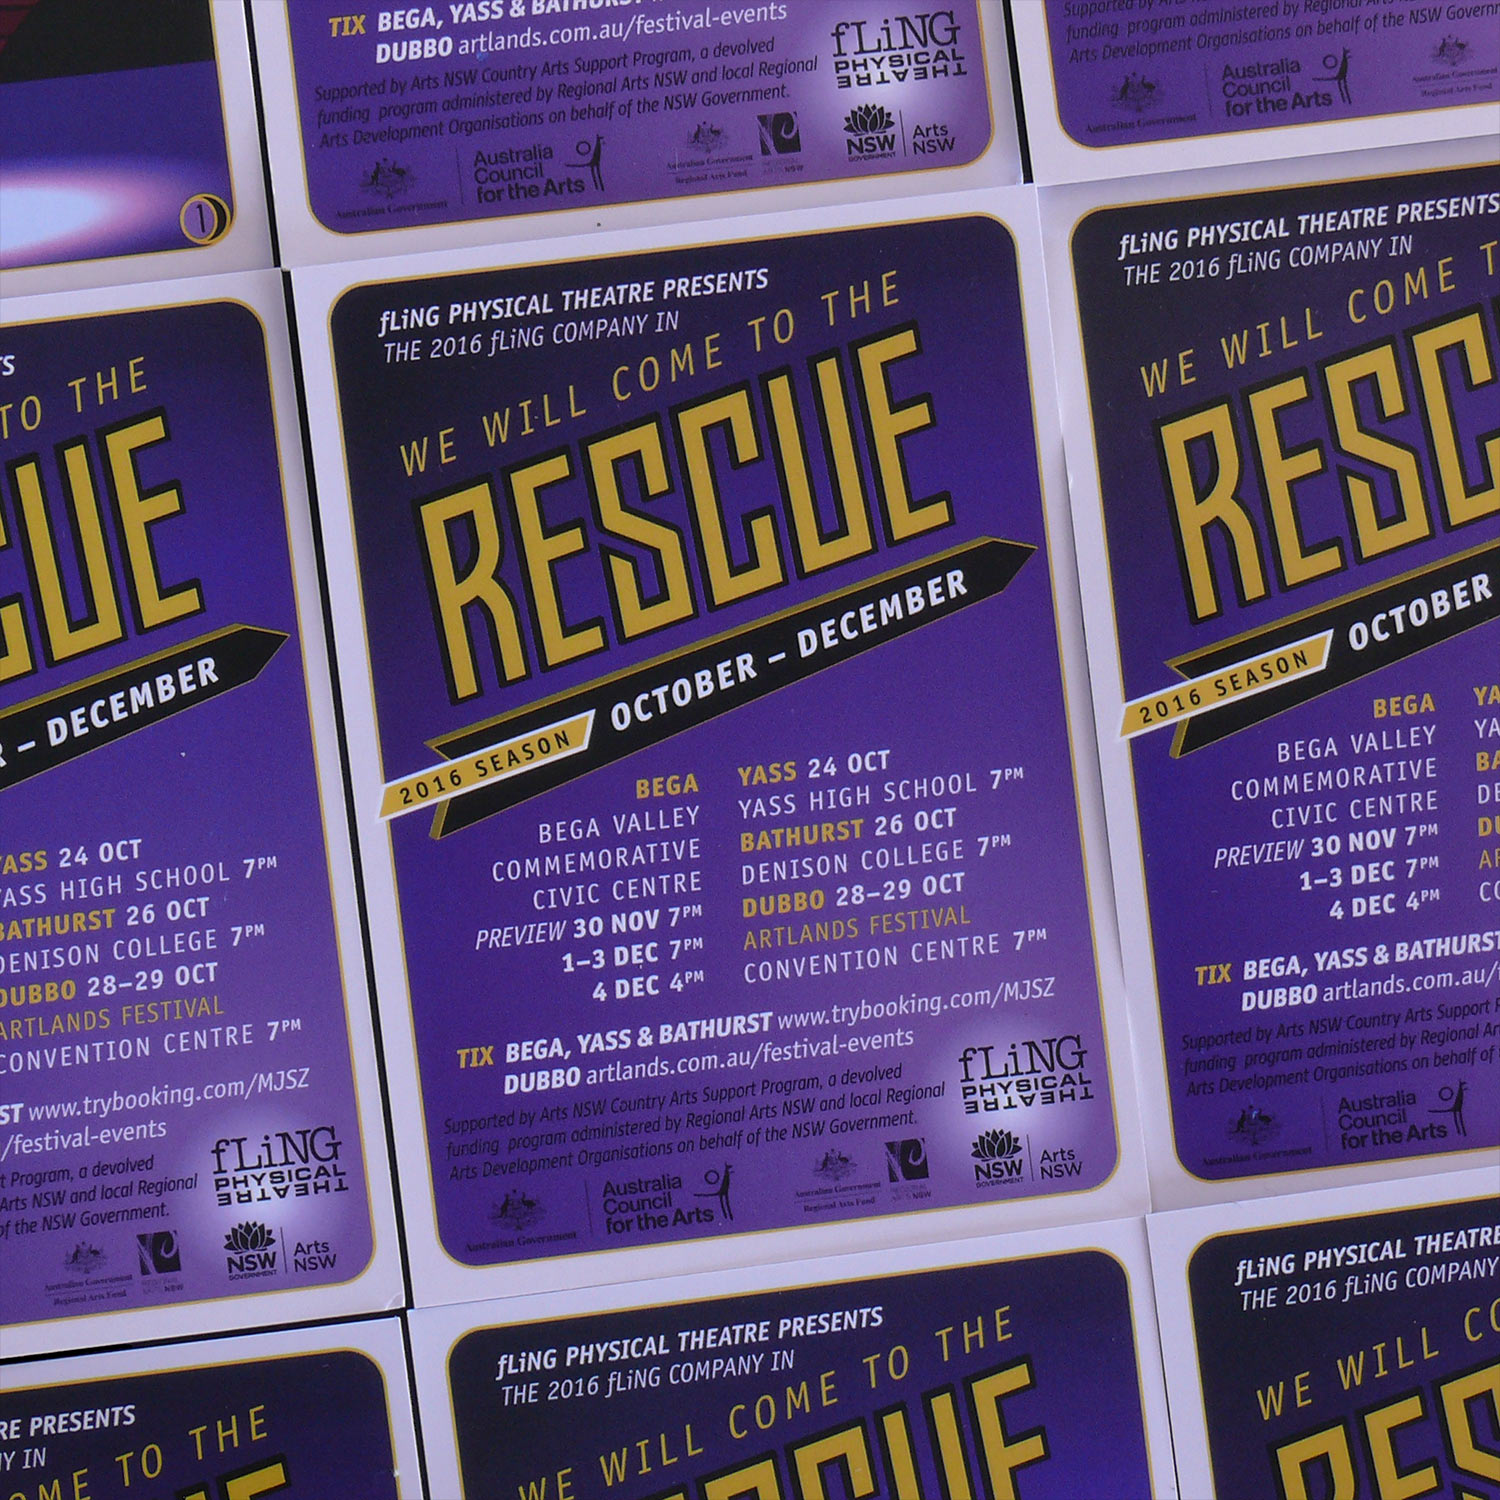 Niva-Design-Rescue-10-BACKS-P1070953.jpg